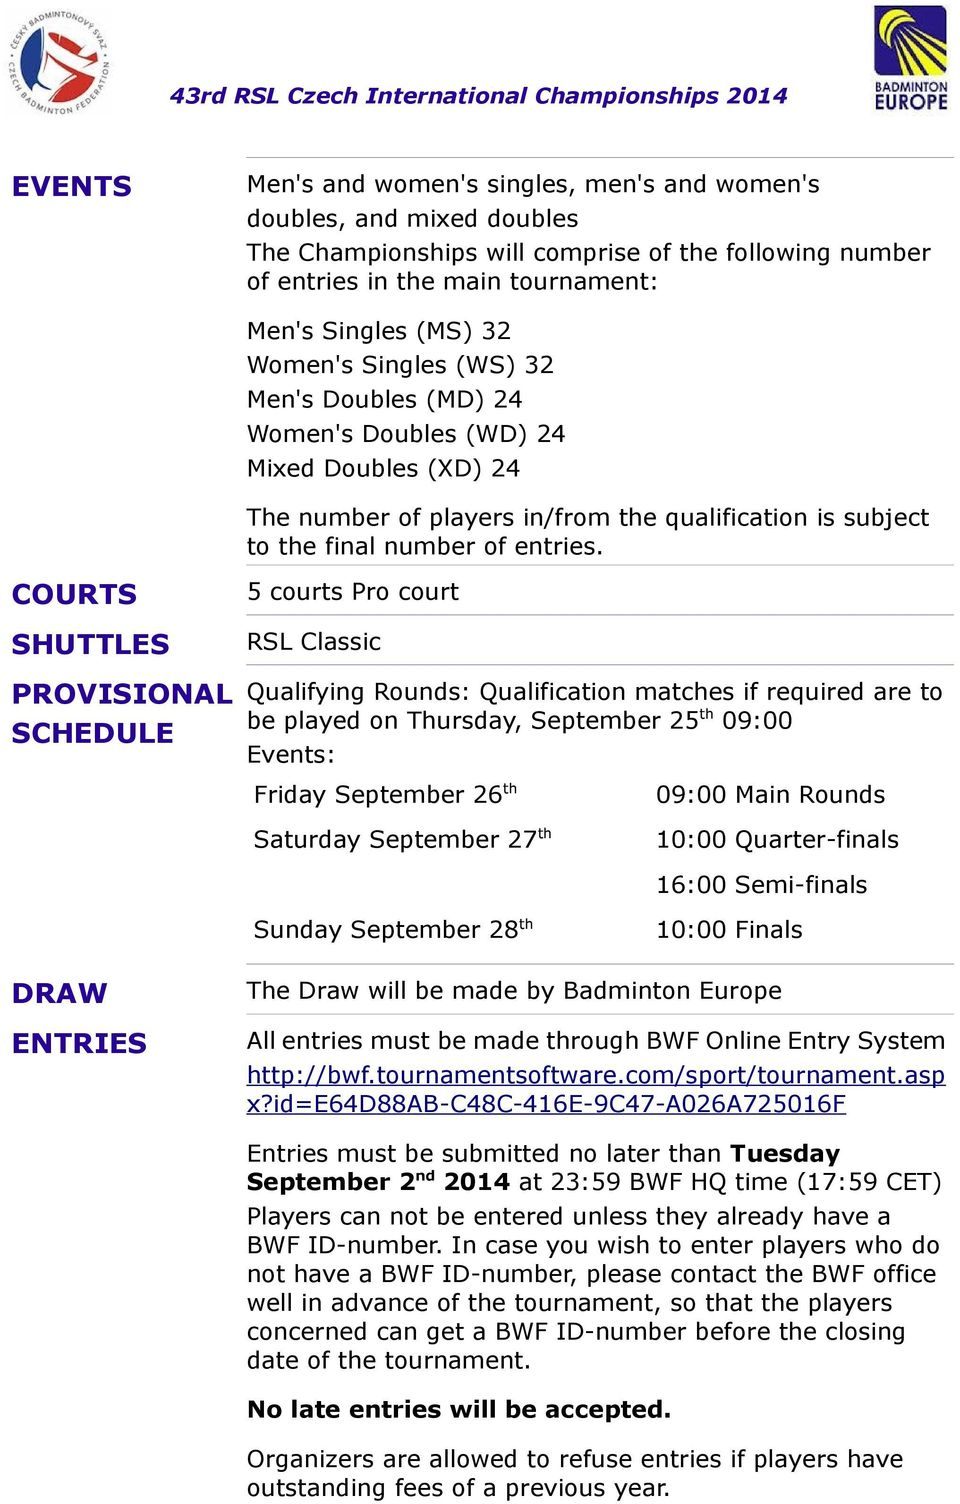 COURTS SHUTTLES PROVISIONAL SCHEDULE 5 courts Pro court RSL Classic Qualifying Rounds: Qualification matches if required are to be played on Thursday, September 25 th 09:00 Events: Friday September